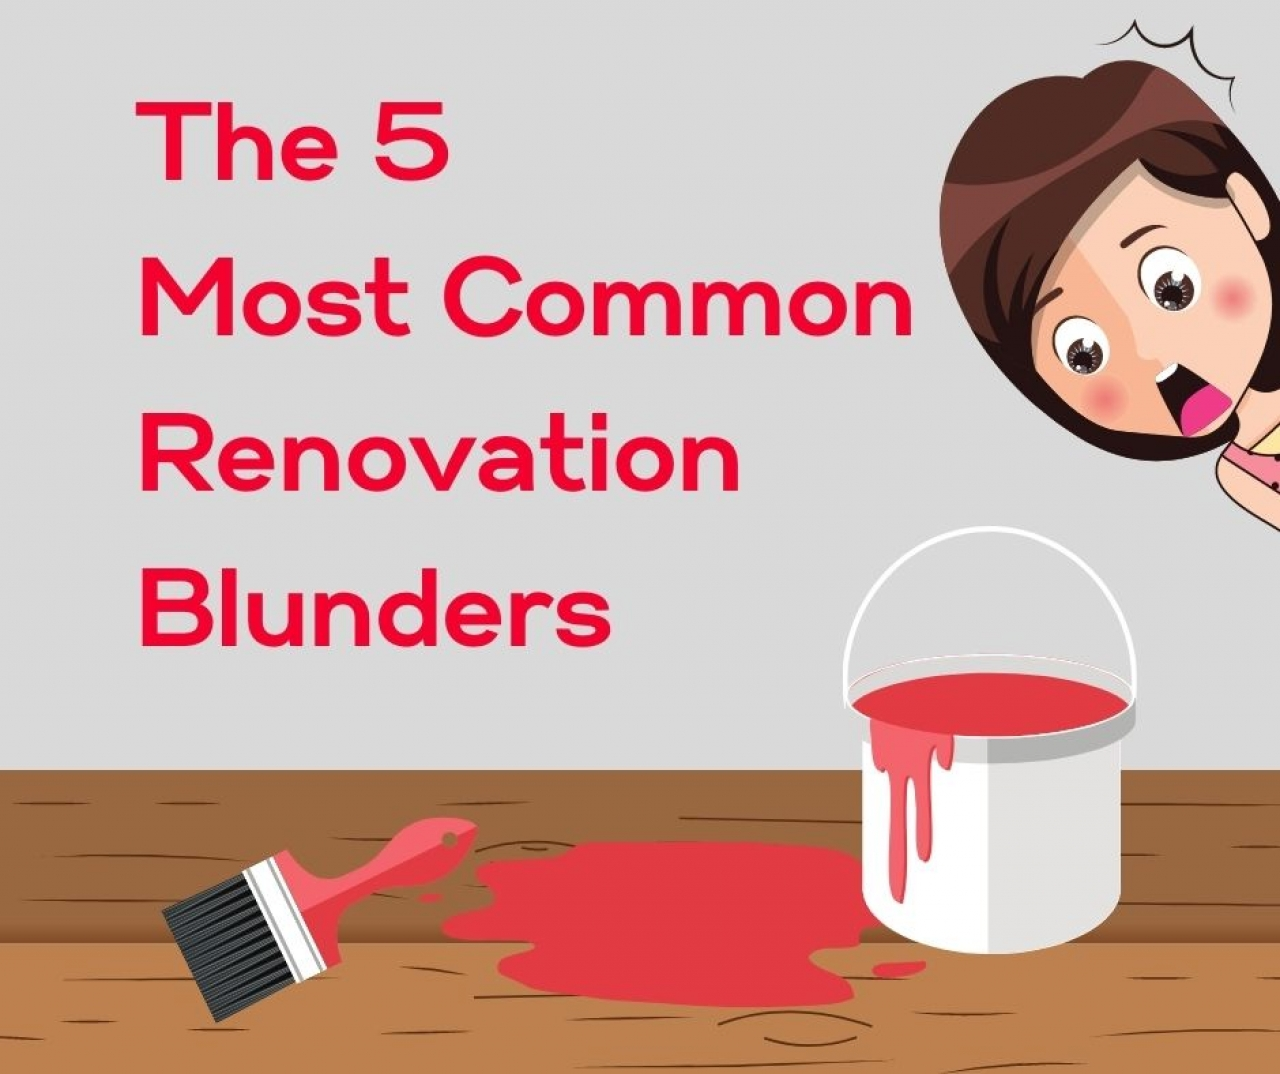 >The Five Most Common Renovation Blunders